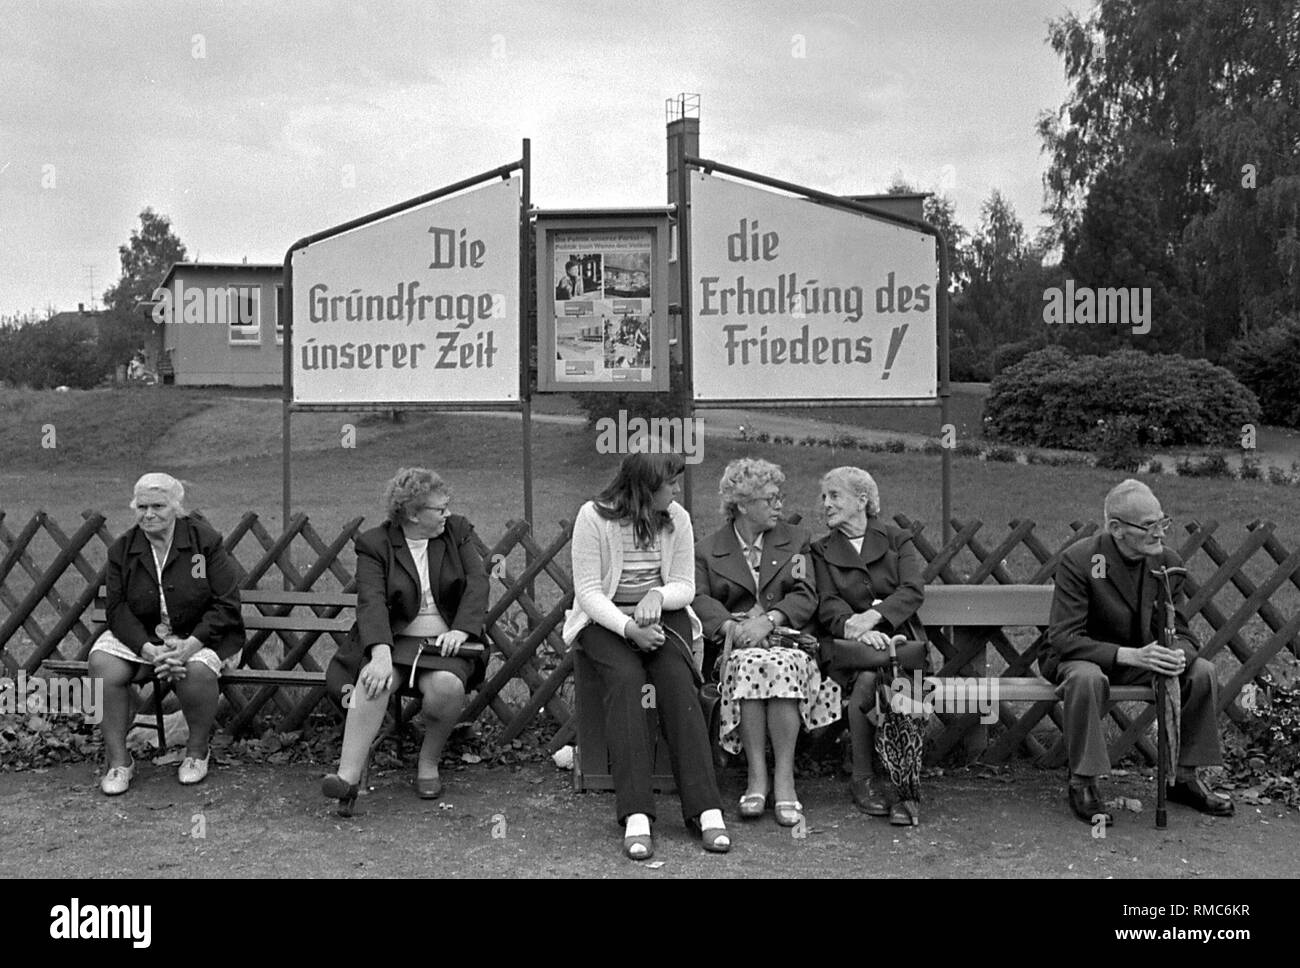 Women and a man sit and talk on two benches in a city in the GDR, behind them are two socialist propaganda posters with the inscription 'The basic question of our time - the preservation of peace'. - Stock Image